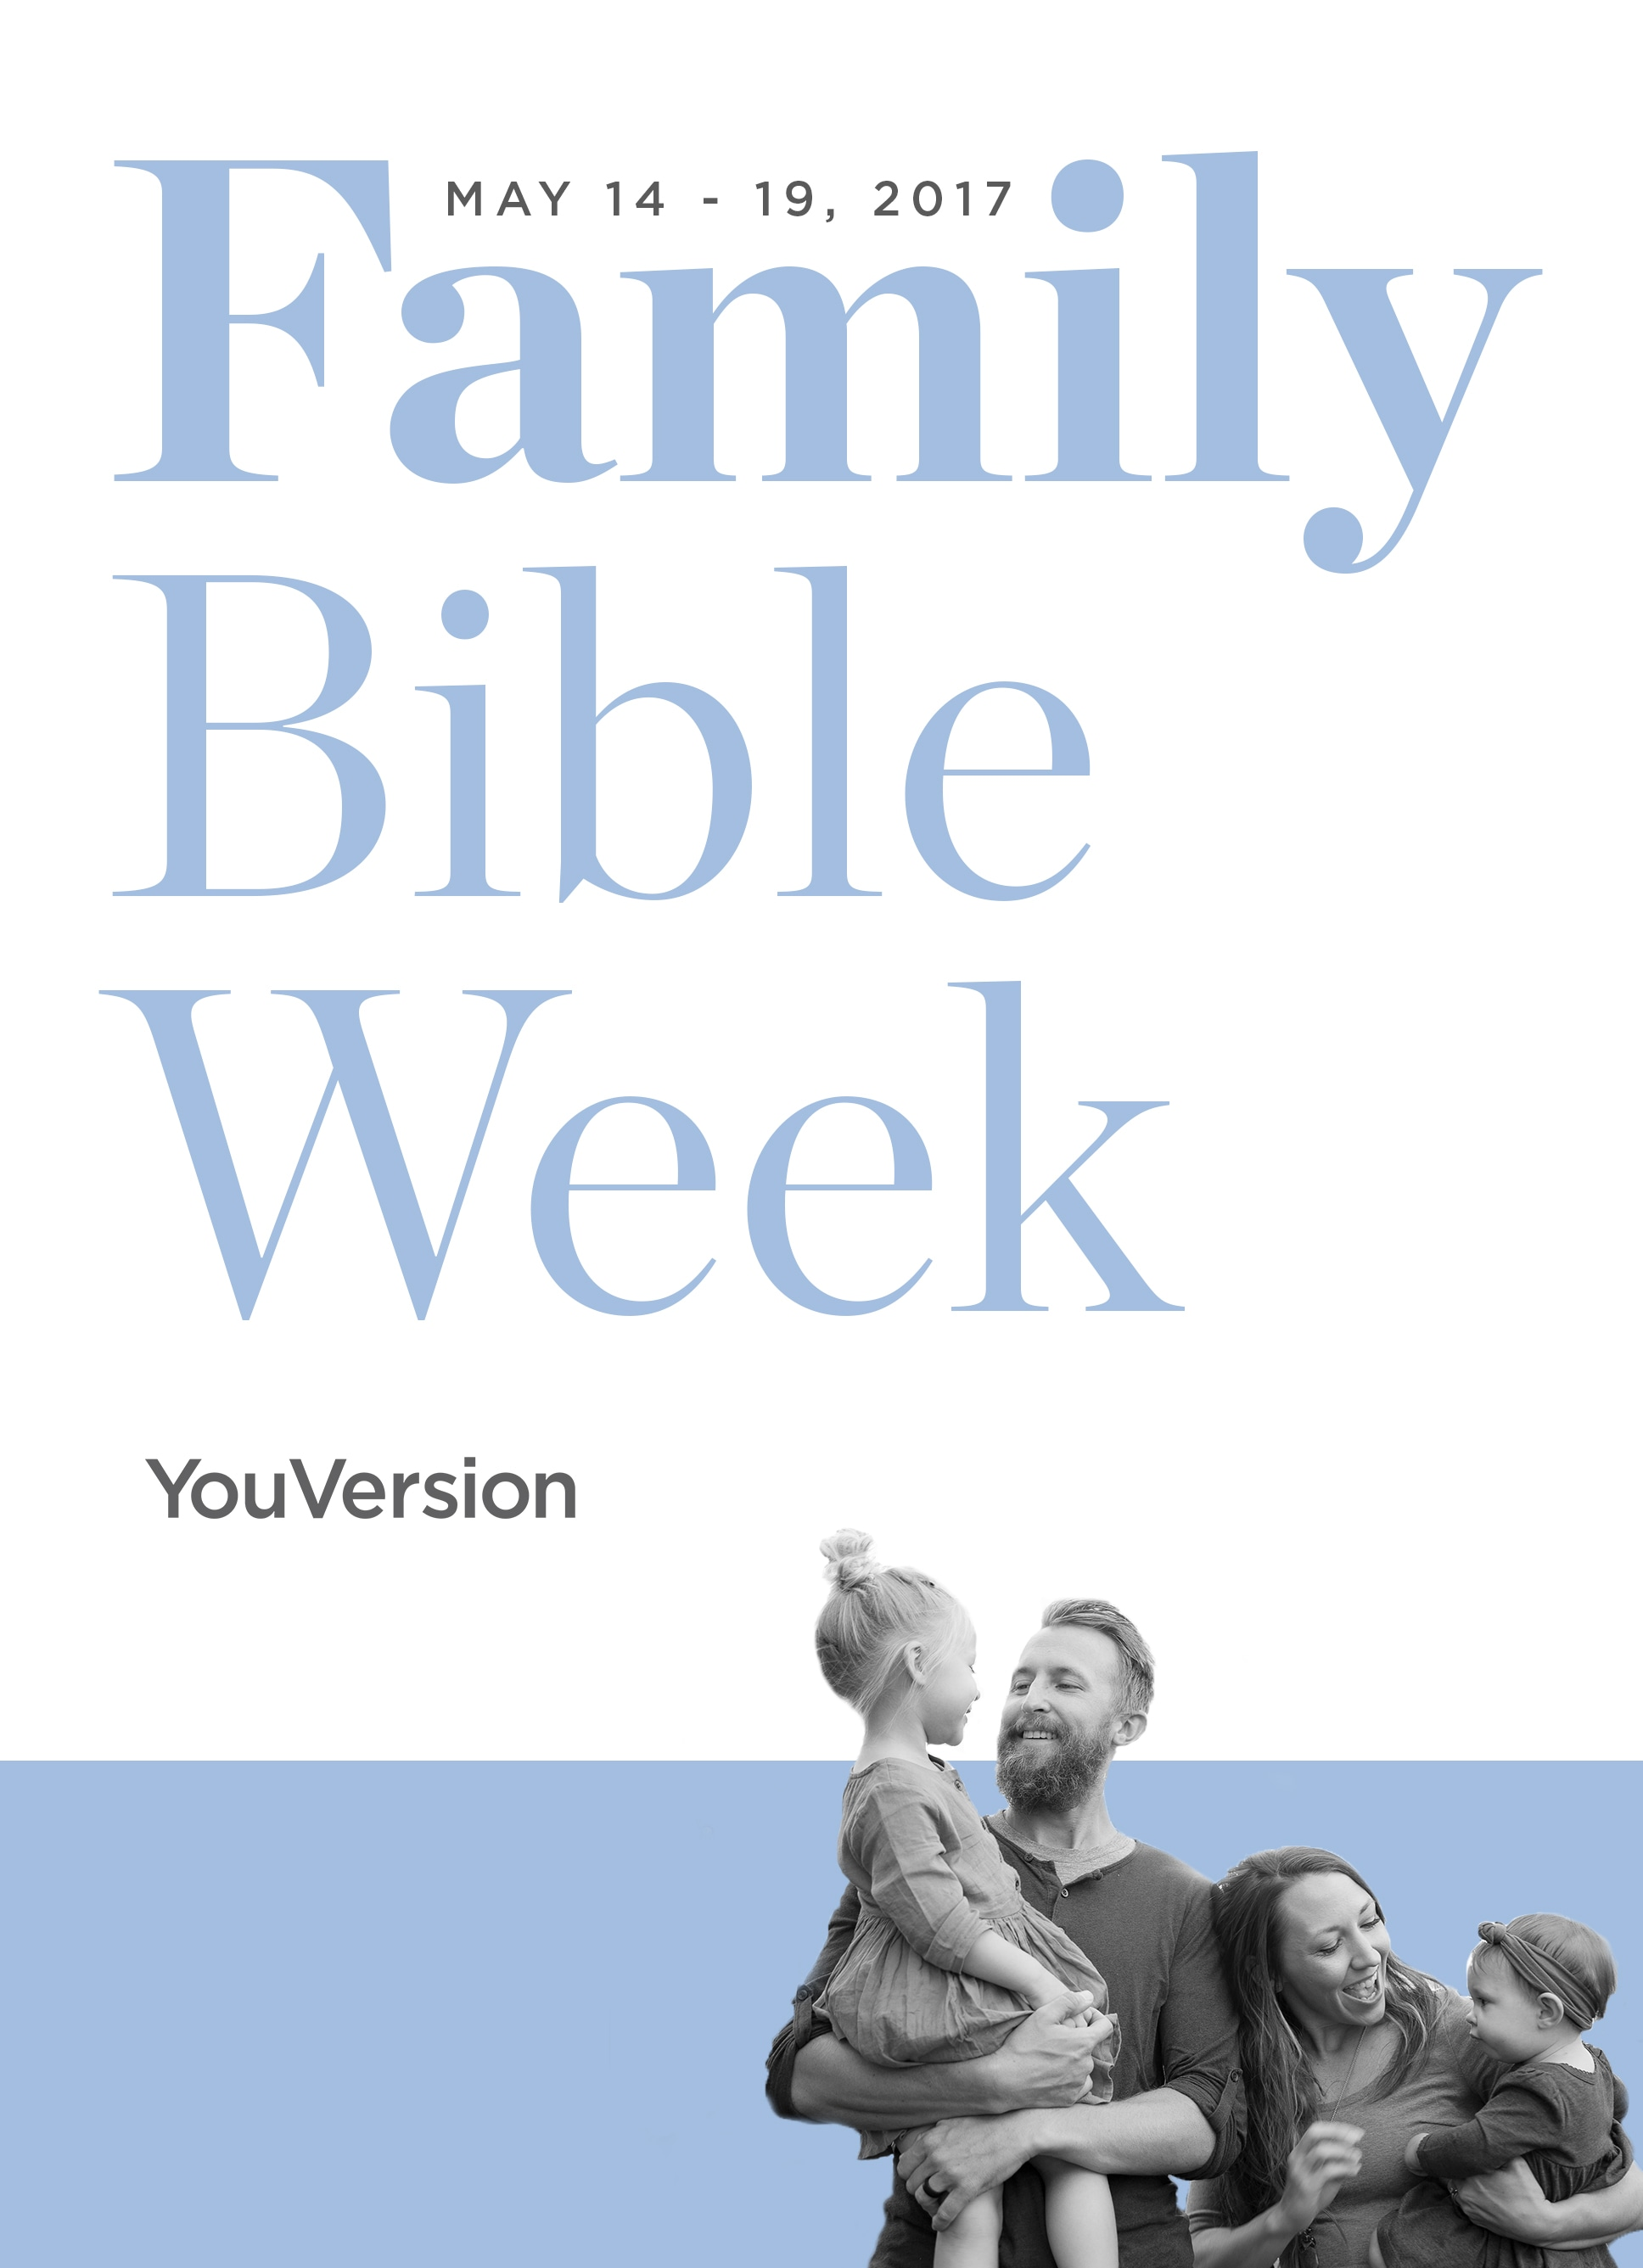 Family Bible Week Plans for Families